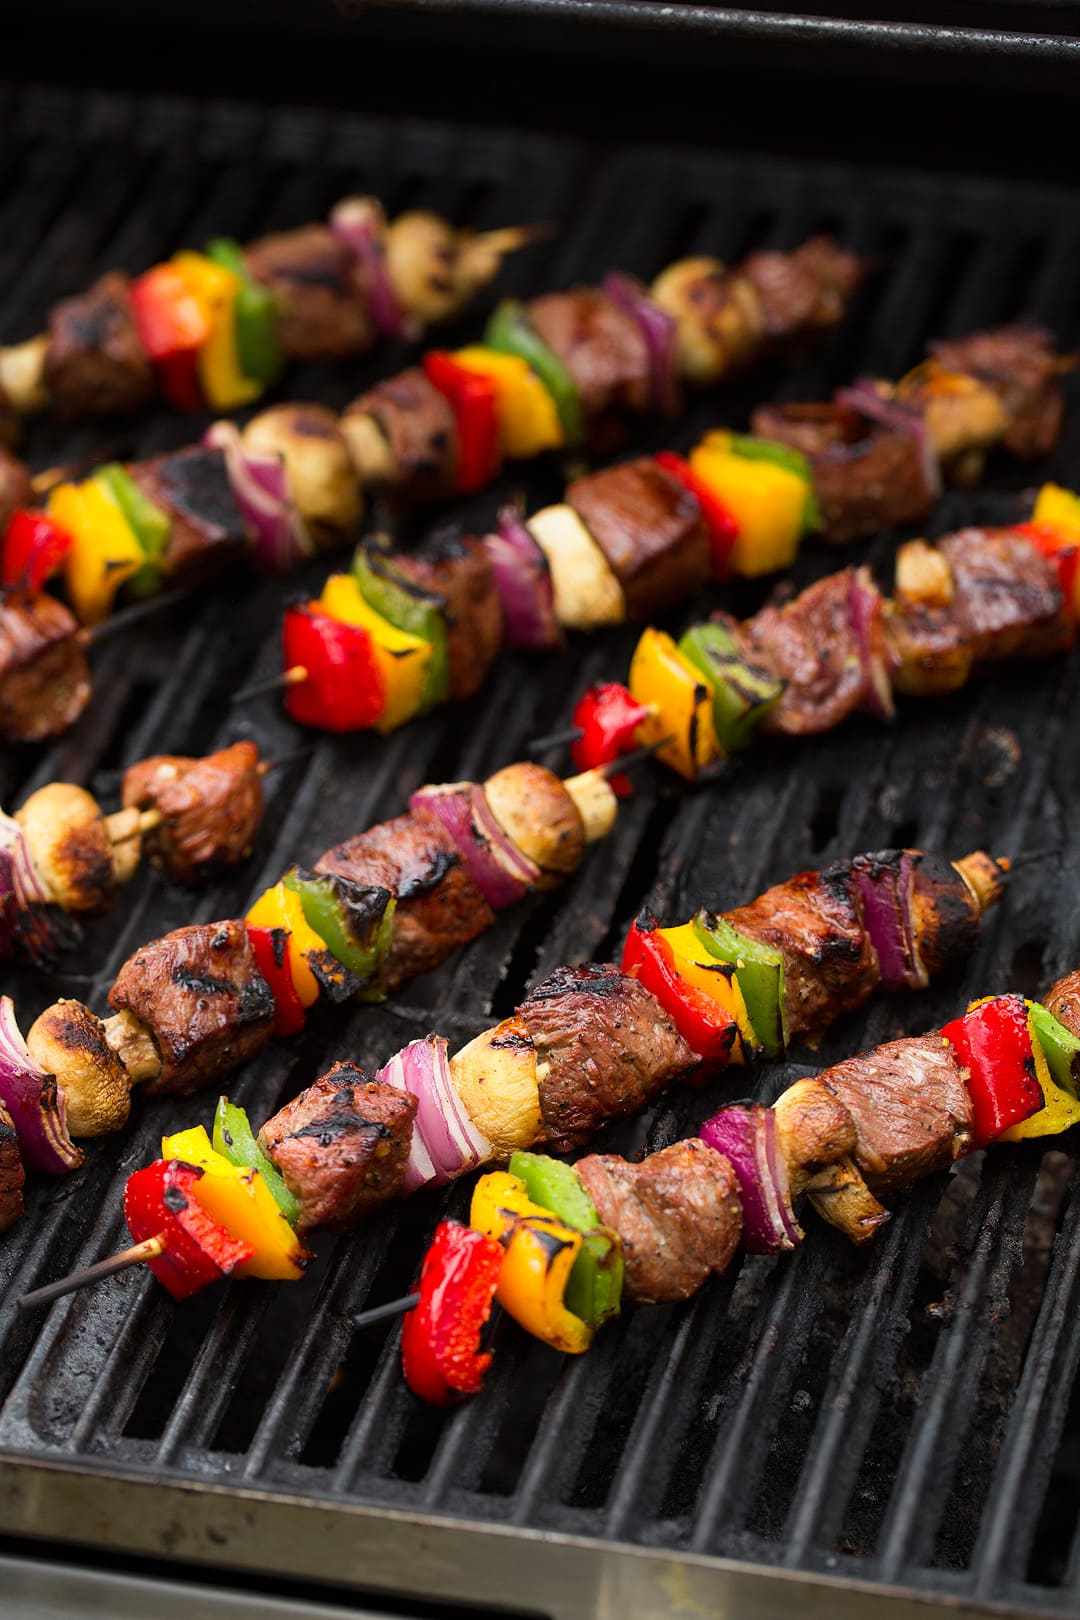 Nine steak kebabs shown here on a grill. Includes steak cubes and colorful fresh veggies on skewers.